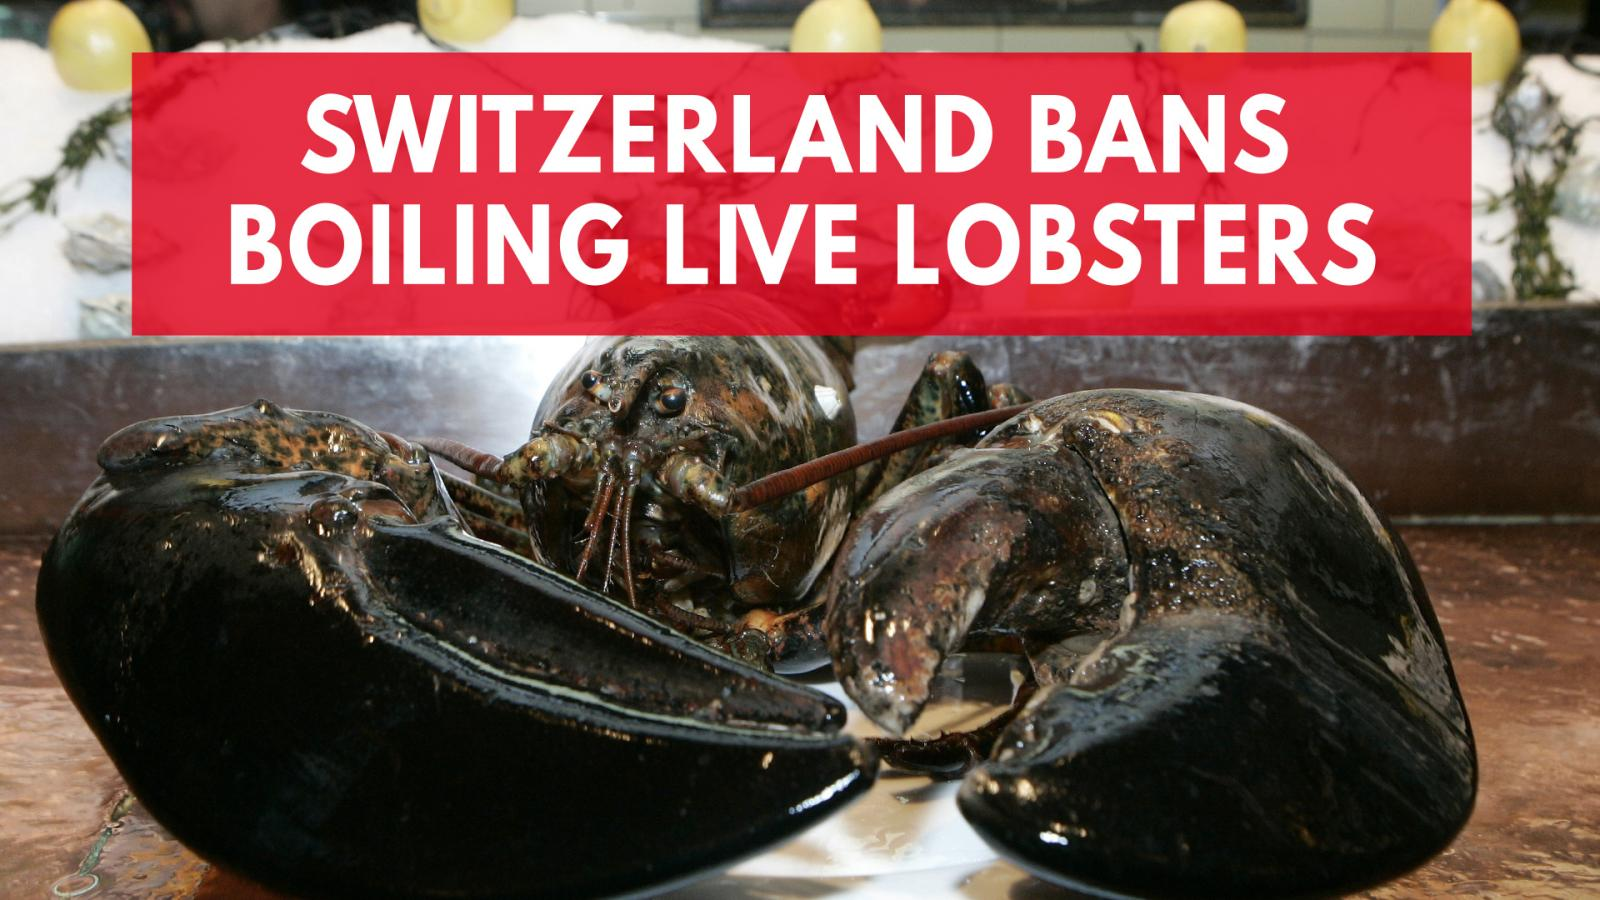 Switzerland bans citizens from boiling lobsters alive